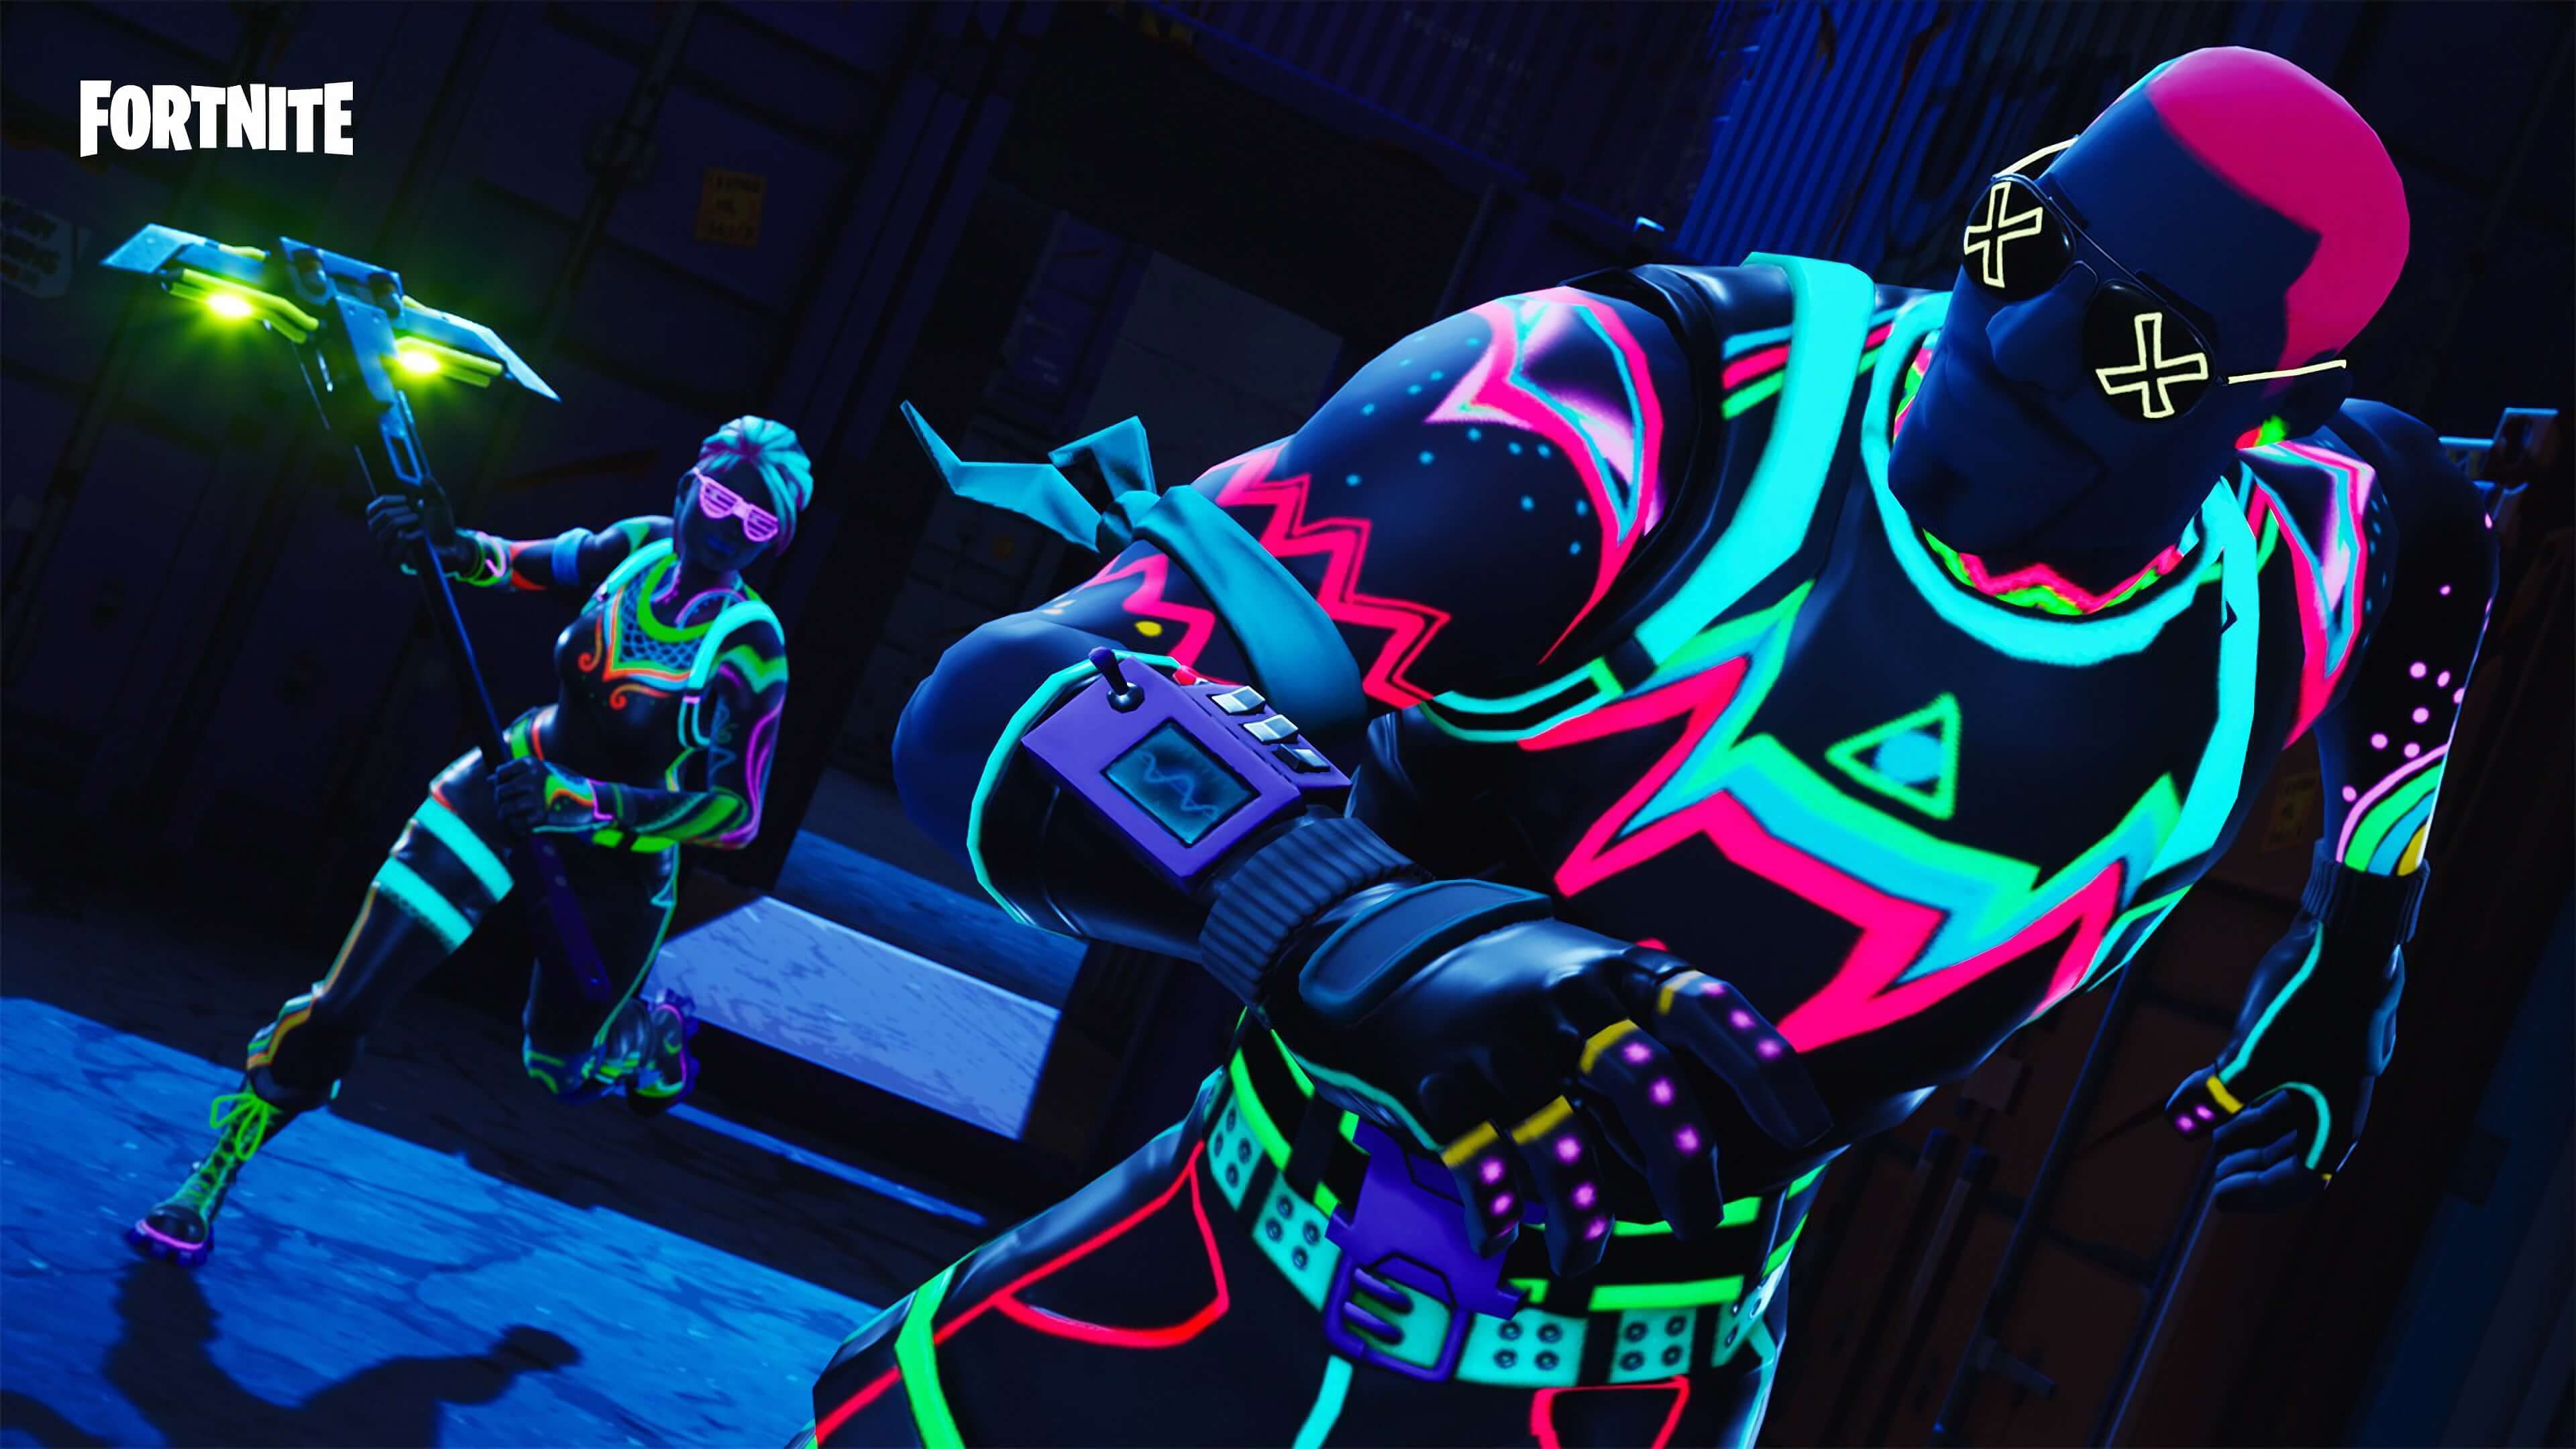 fortnite hd wallpaper 2103